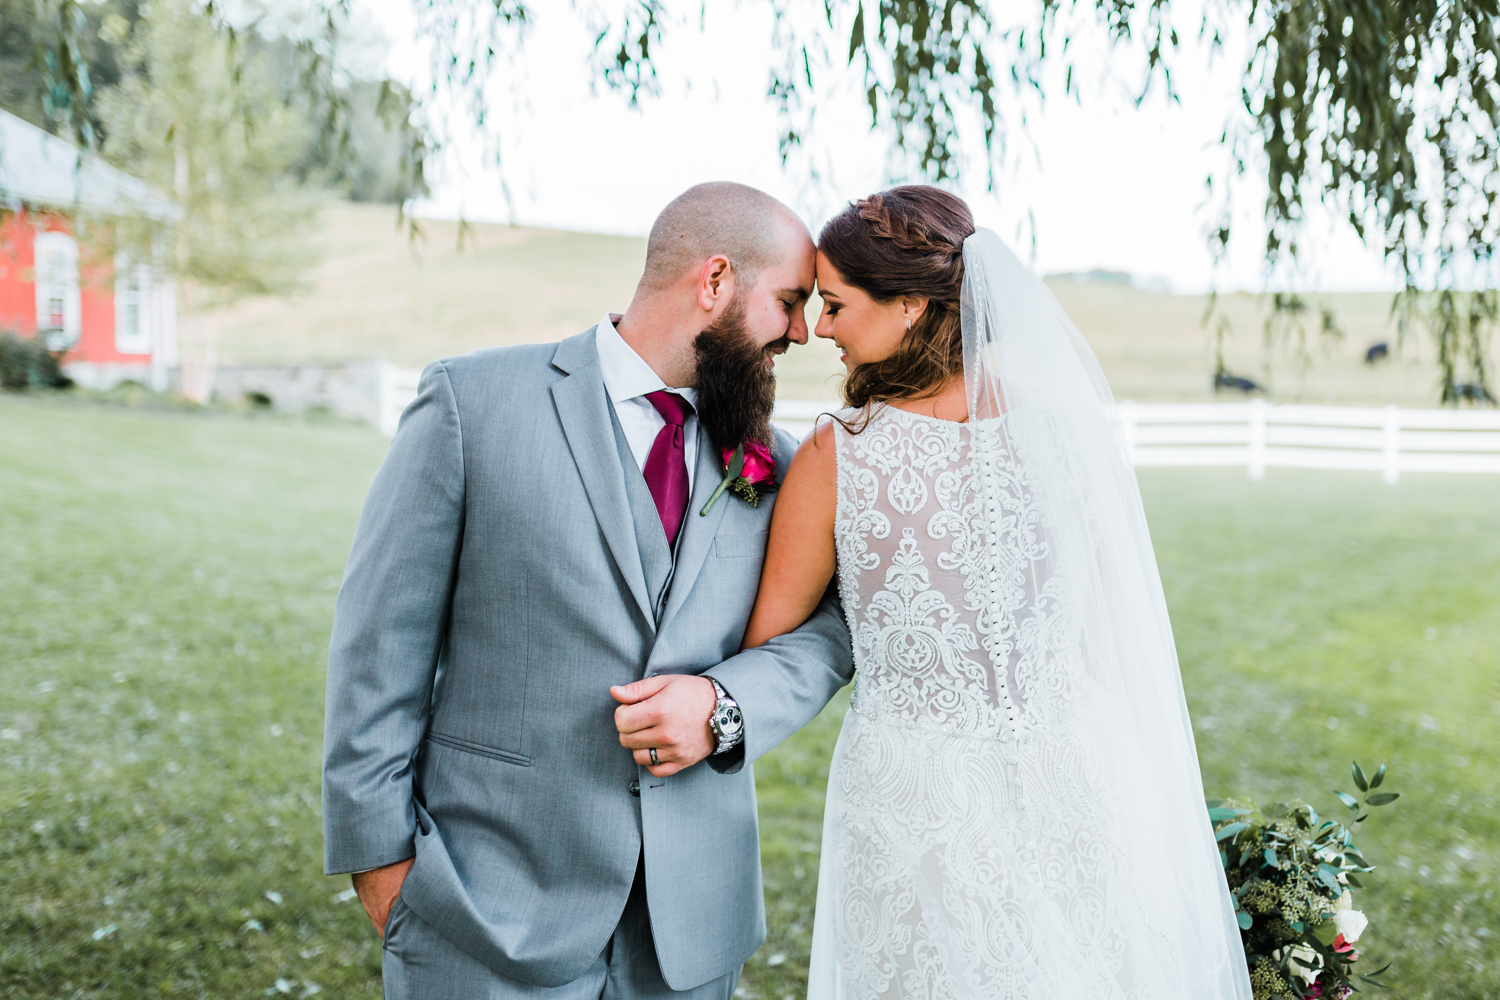 bride and groom share a romantic moment together